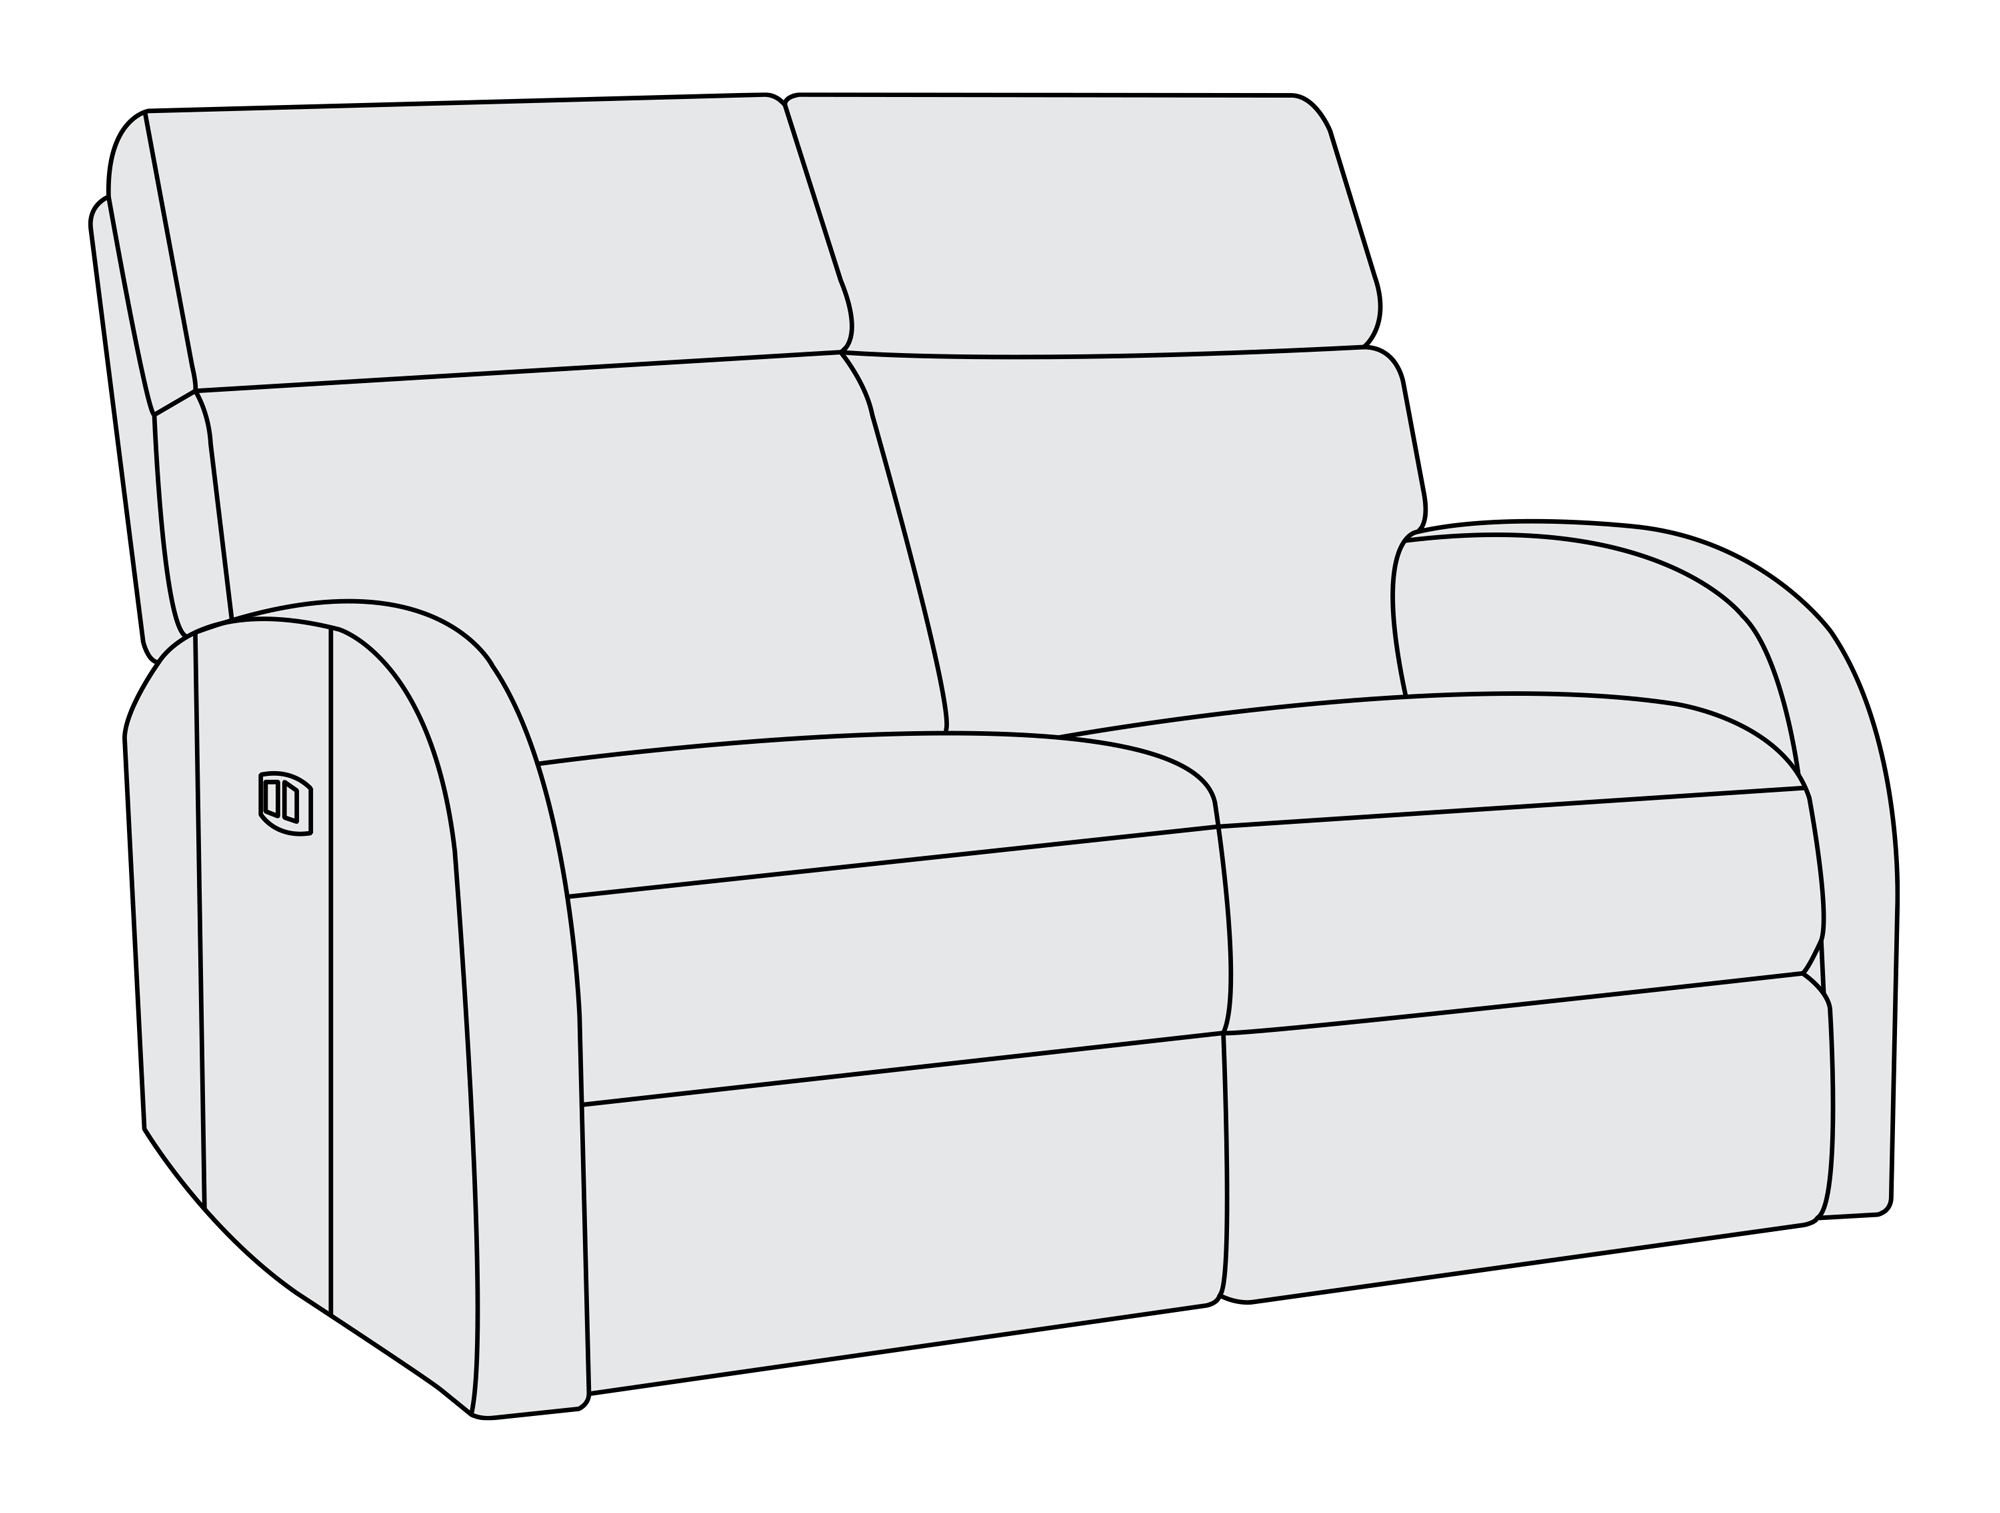 Furniture clipart love seat. Clemens power motion loveseat